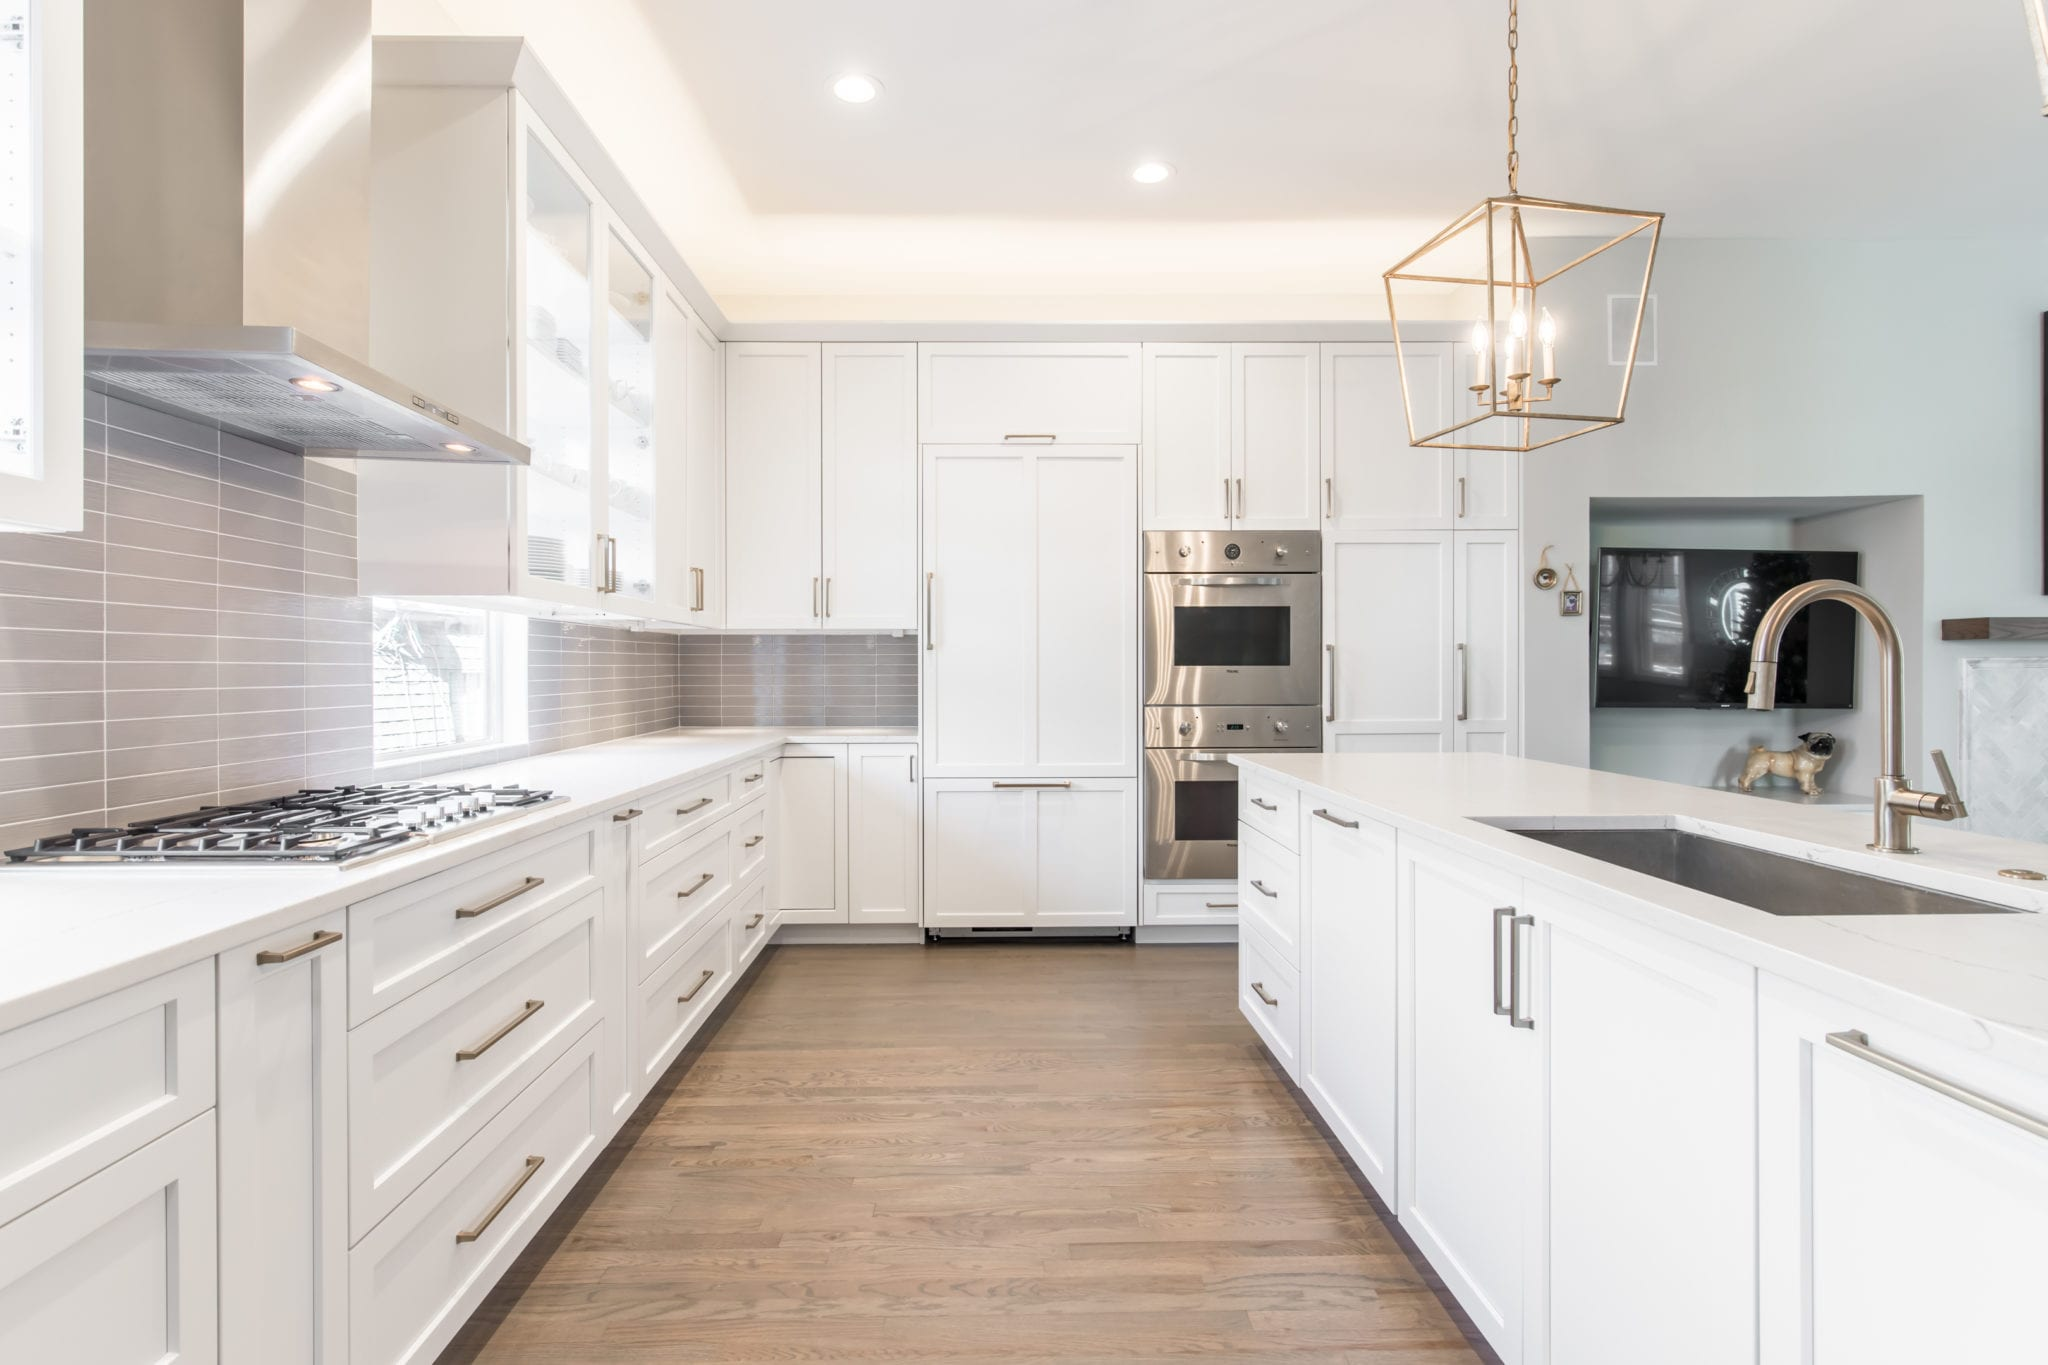 New-Renowned-Kitchen-Cabinets-After-Remodel-Dallas-Texas-Townhome-Condo